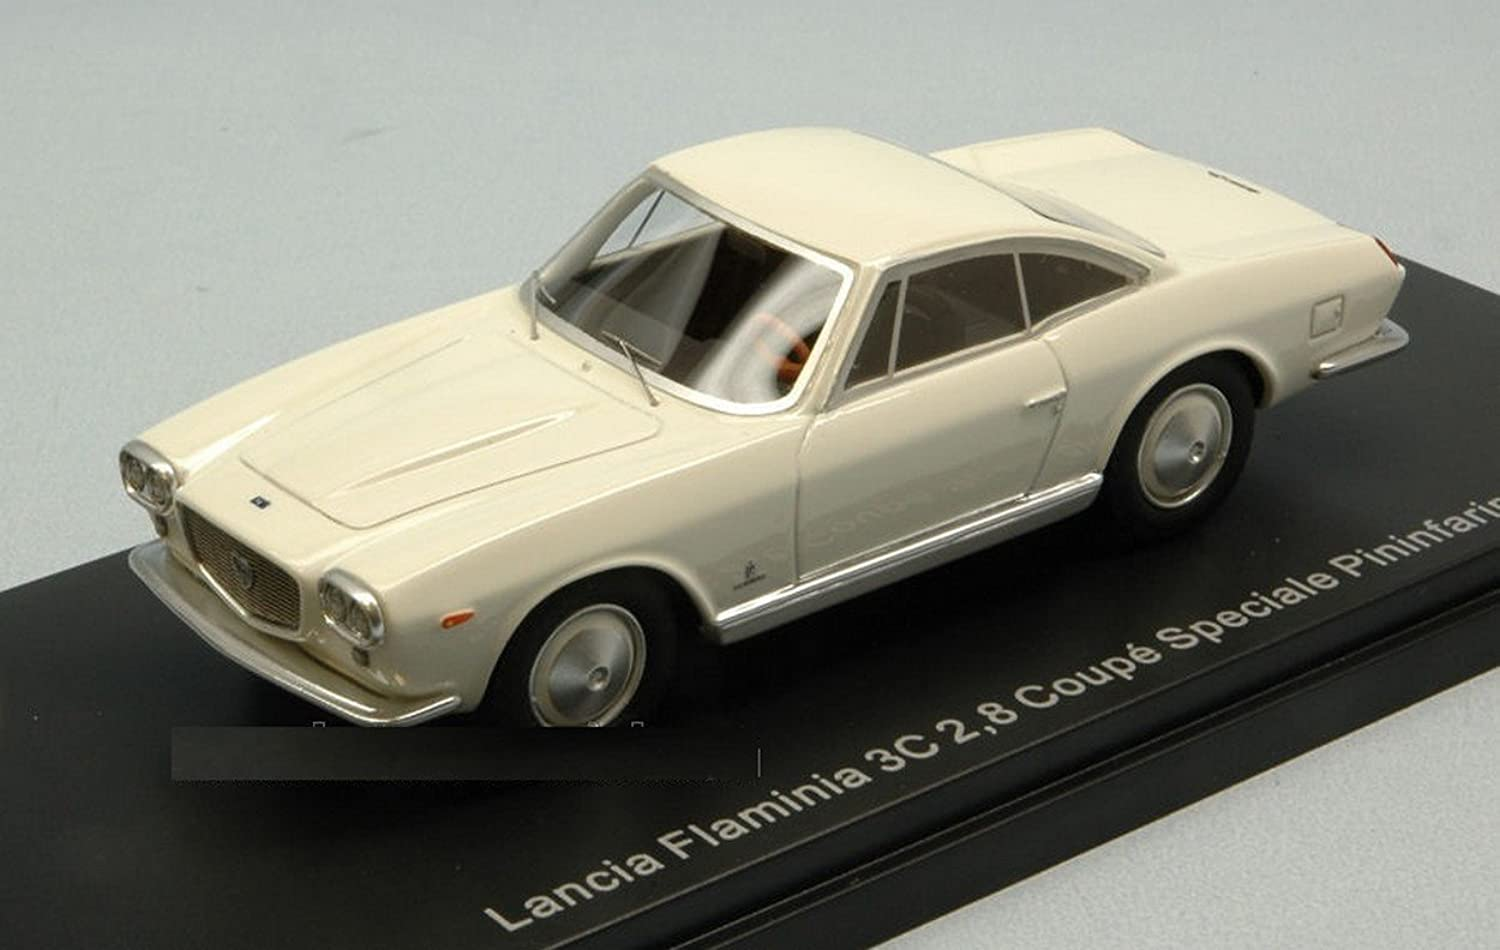 NEO SCALE MODELS NEO46995 LANCIA FLAMINIA 3C COUPE' SPECIALE 1963 1 43 DIE CAST